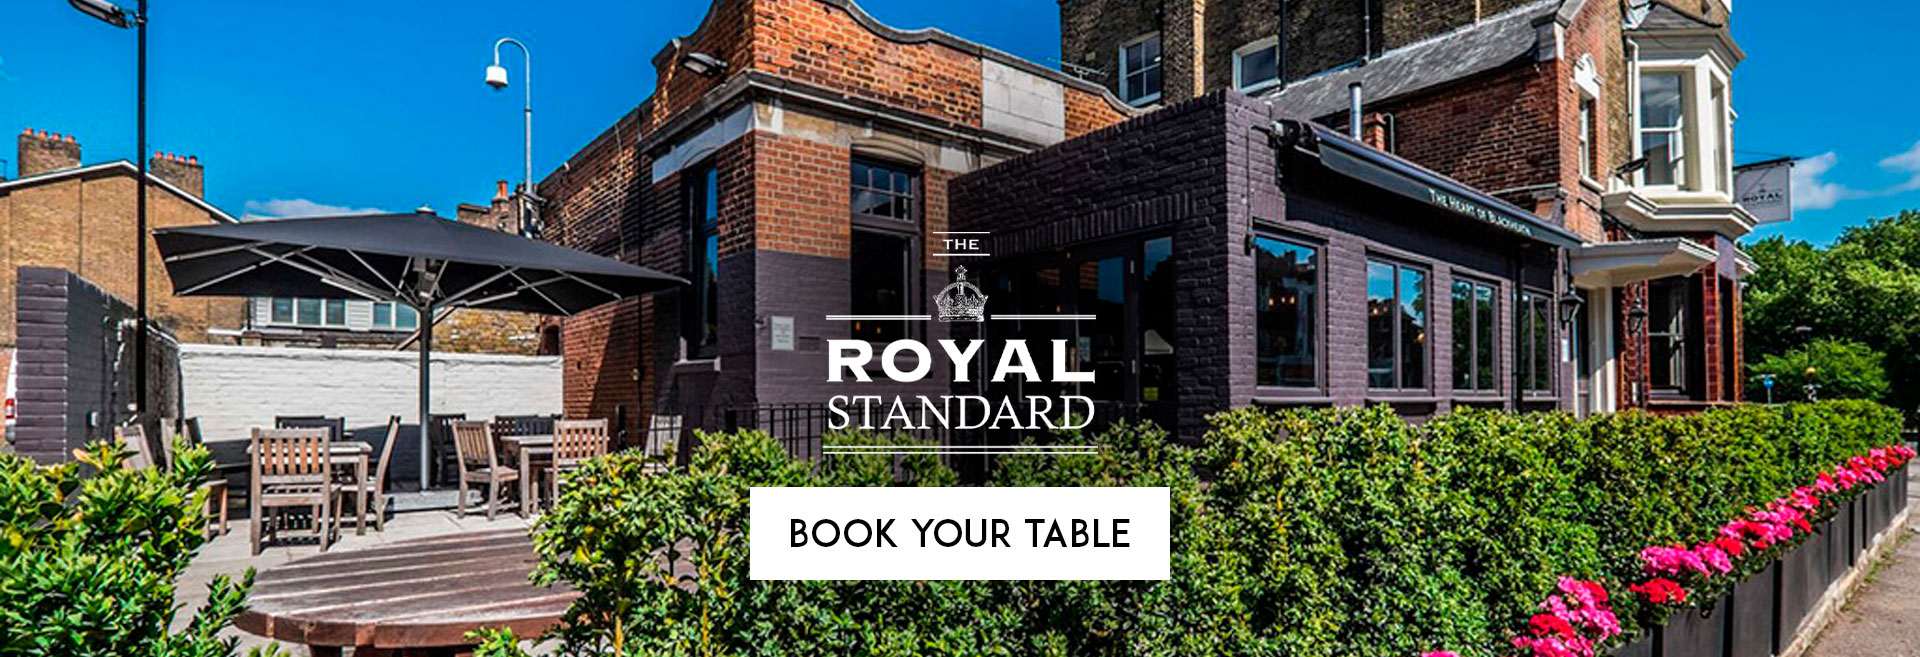 Book Your Table at The Royal Standard